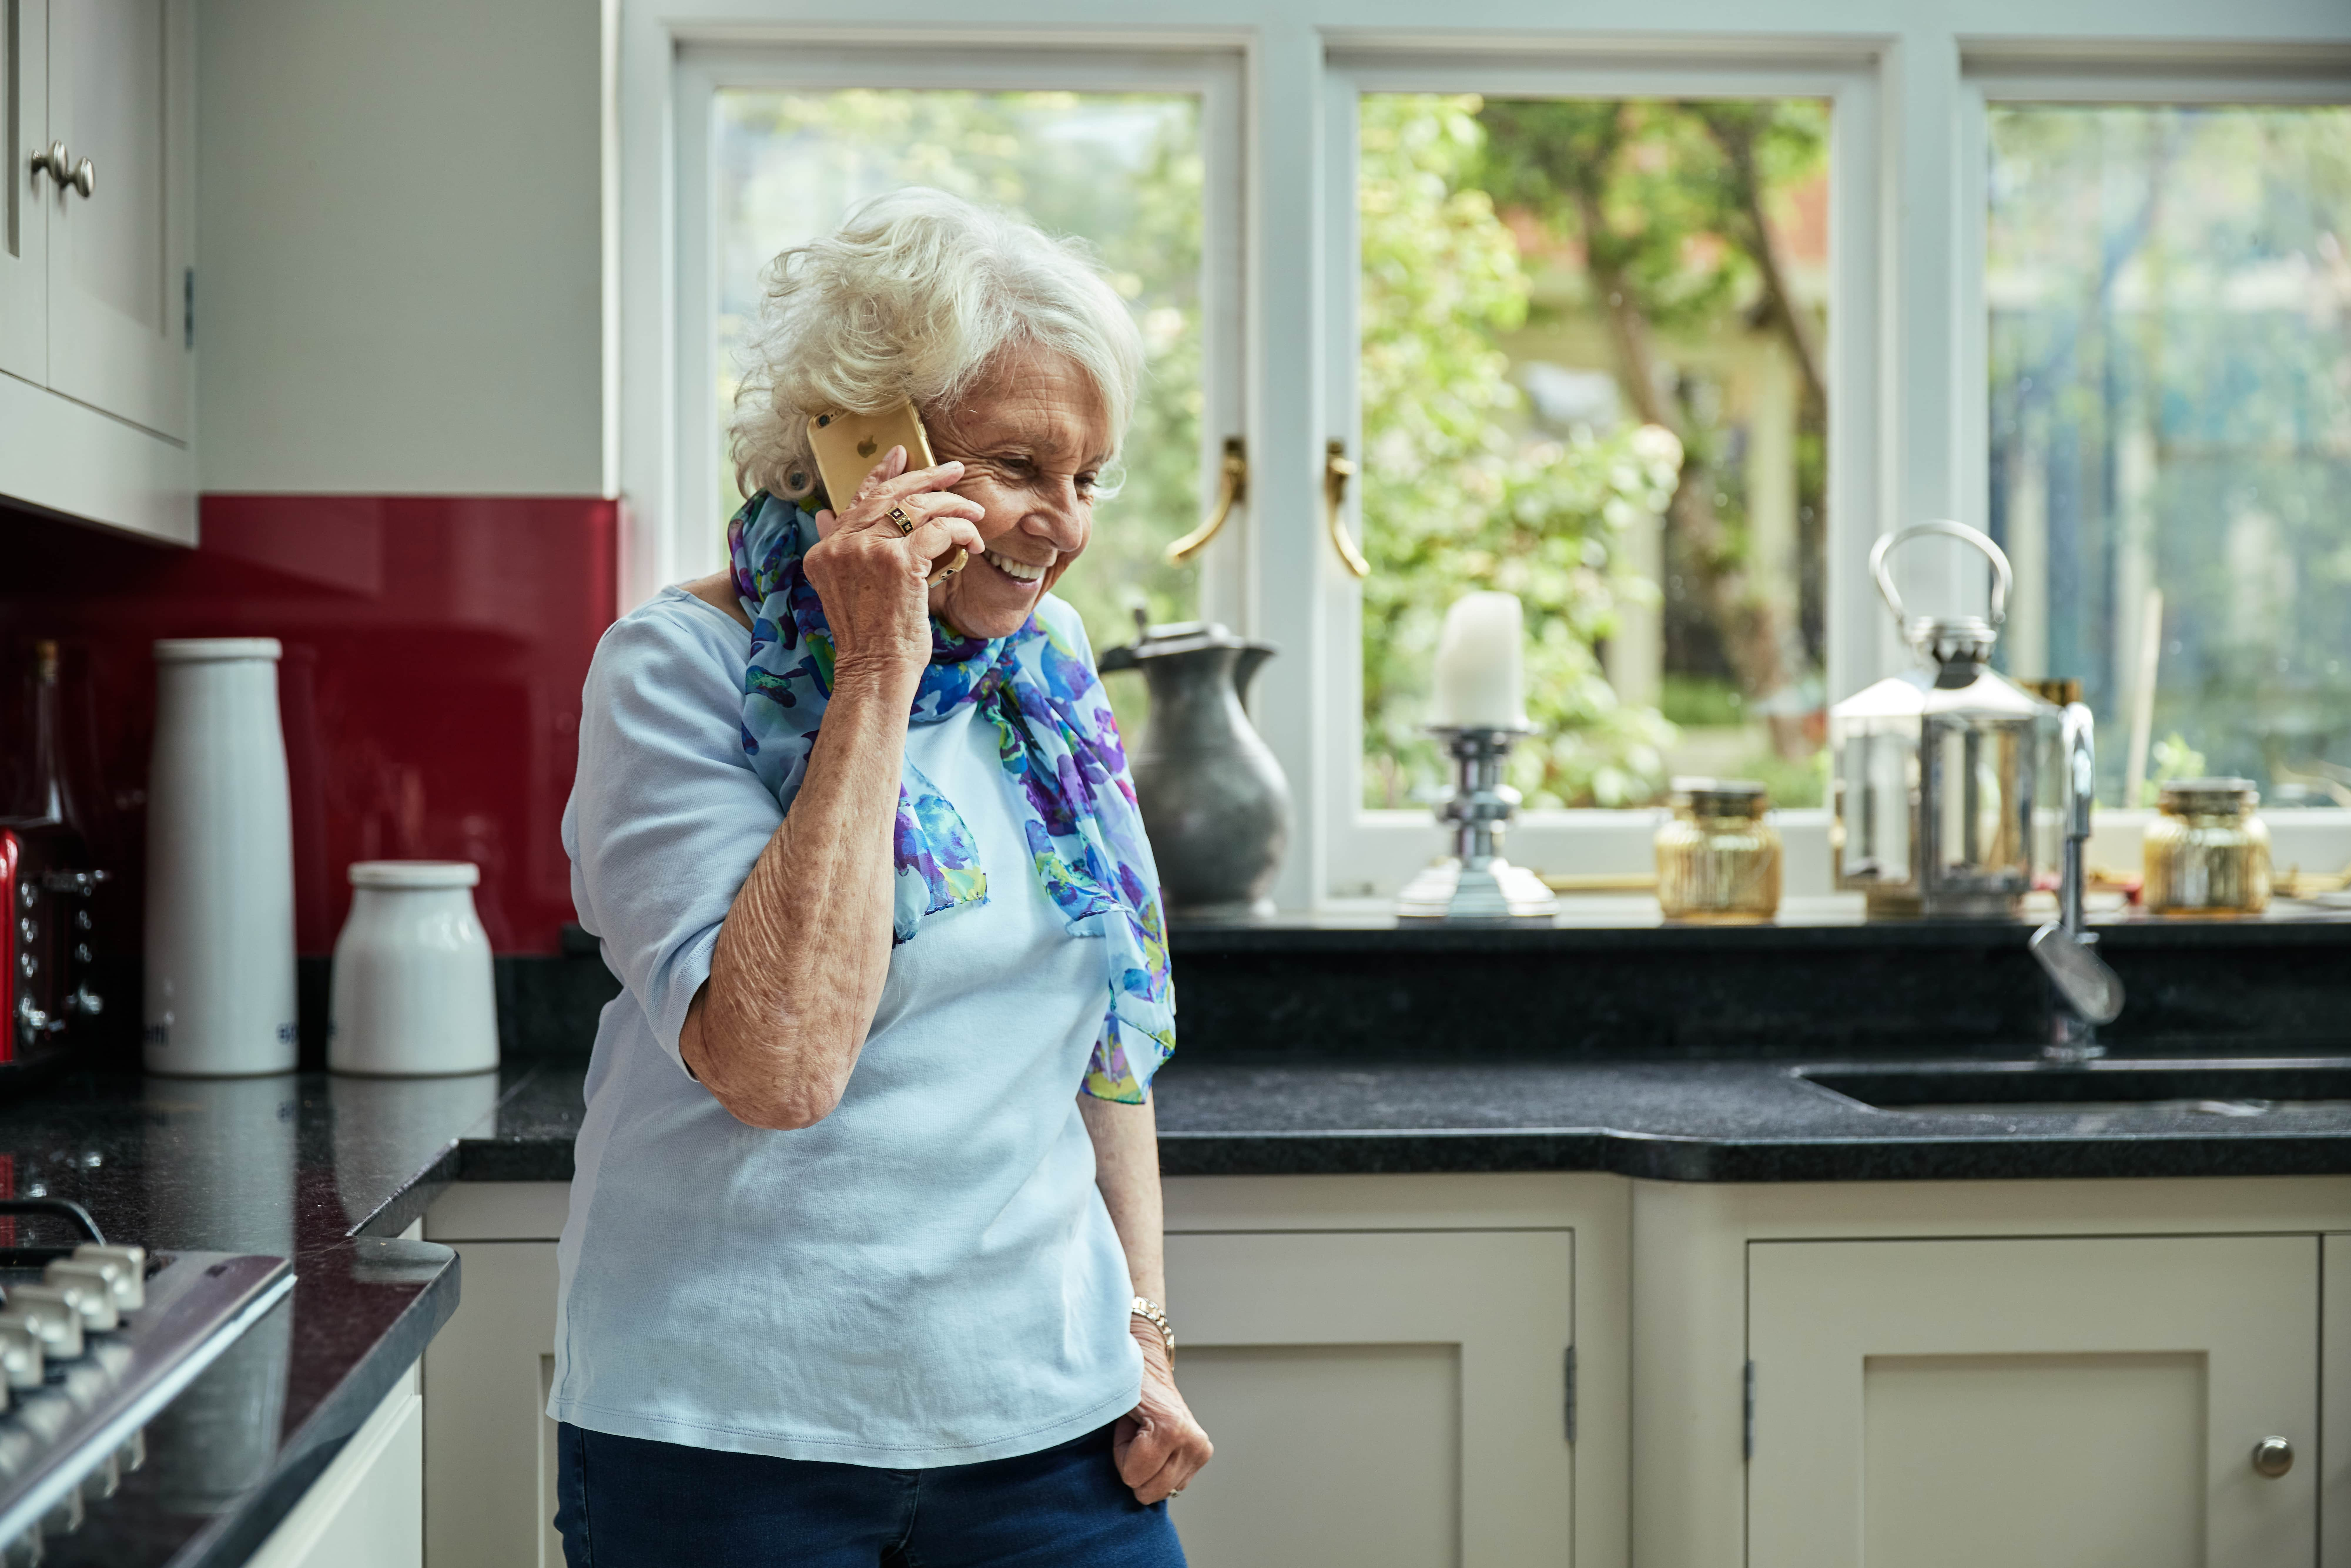 A lady smiling on the phone as she calls the Diabetes UK Helpline service